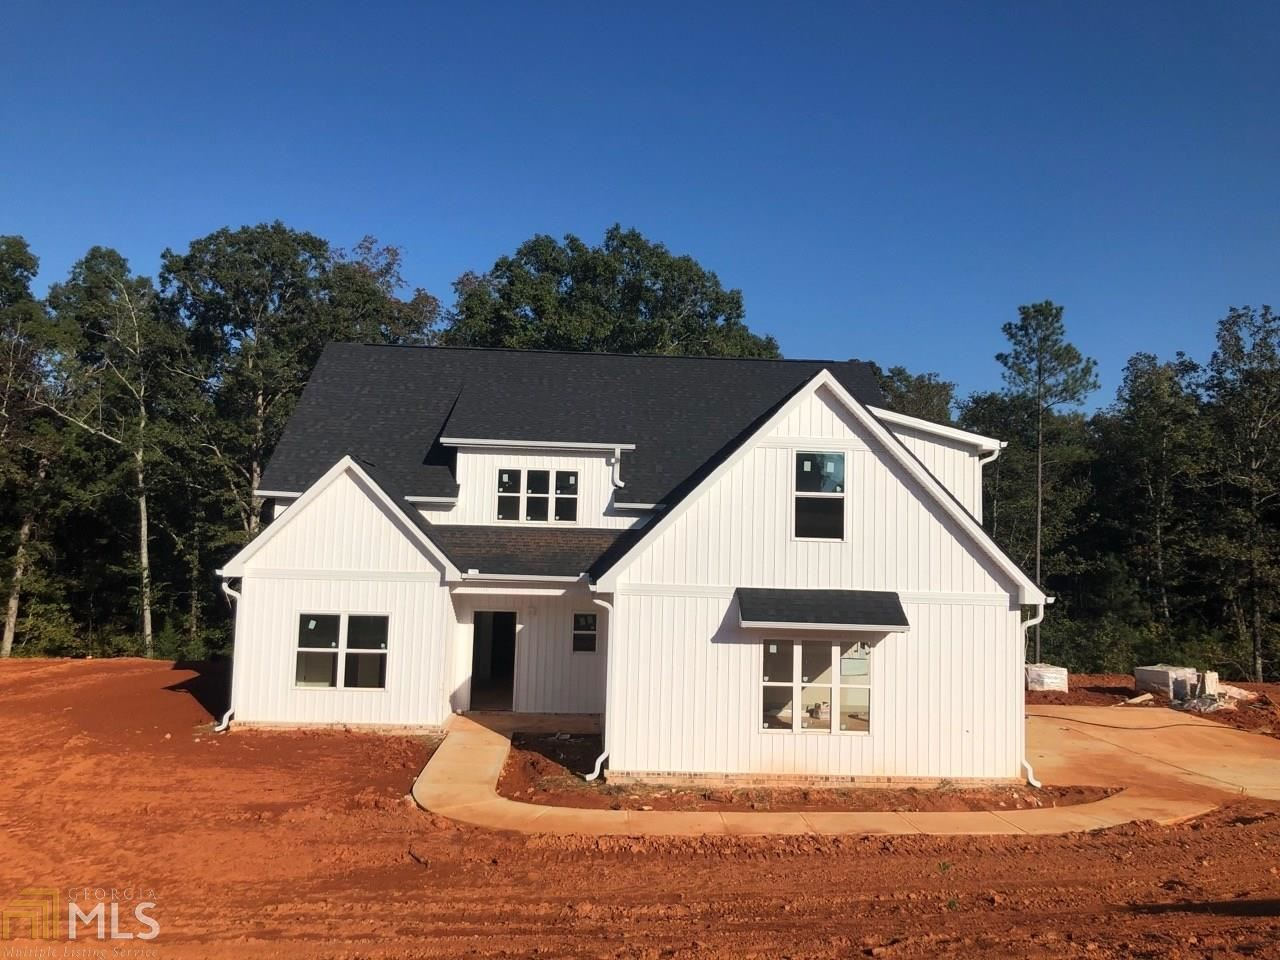 137 Carters Way, Forsyth, GA 31029 - MLS#: 8794723